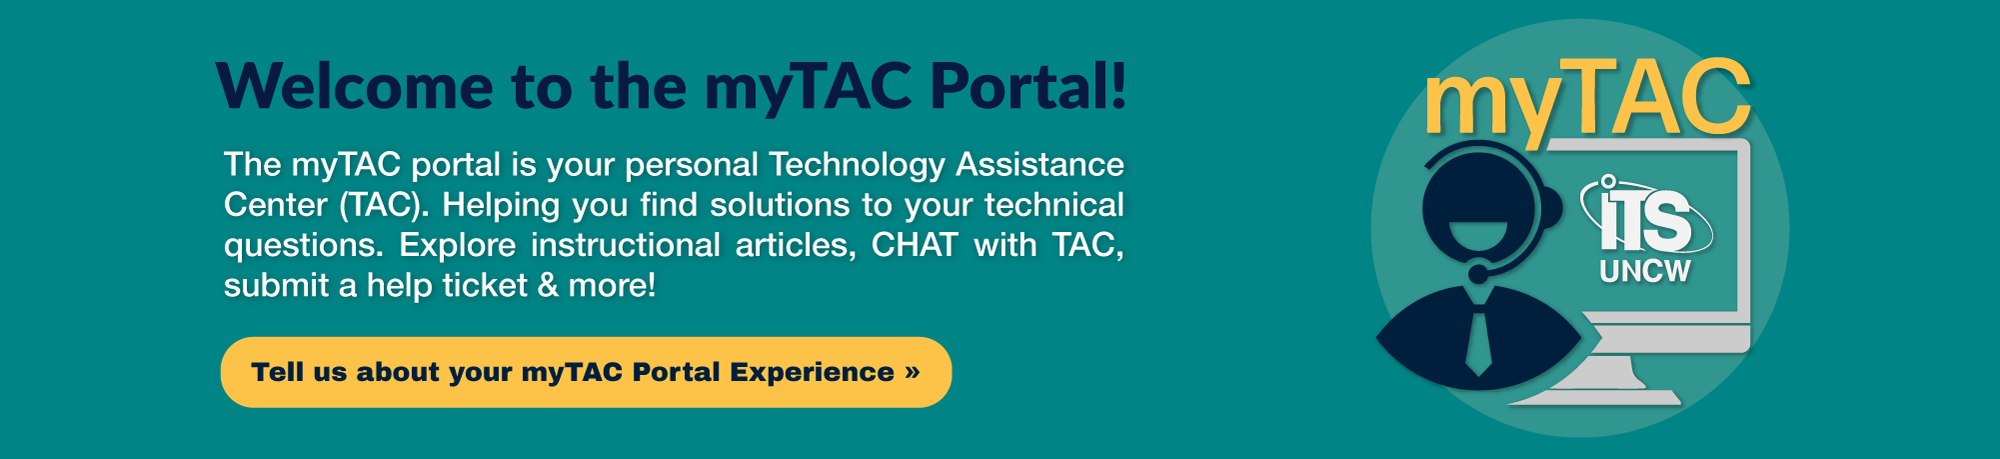 Welcome to the myTAC portal! The myTAC portal is your personal Technology Assistance Center (TAC). Helping you find solutions to your technical questions. Explore instructional articles, CHAT with TAC, submit a help ticket & more! Click to tell us about your myTAC portal experience.